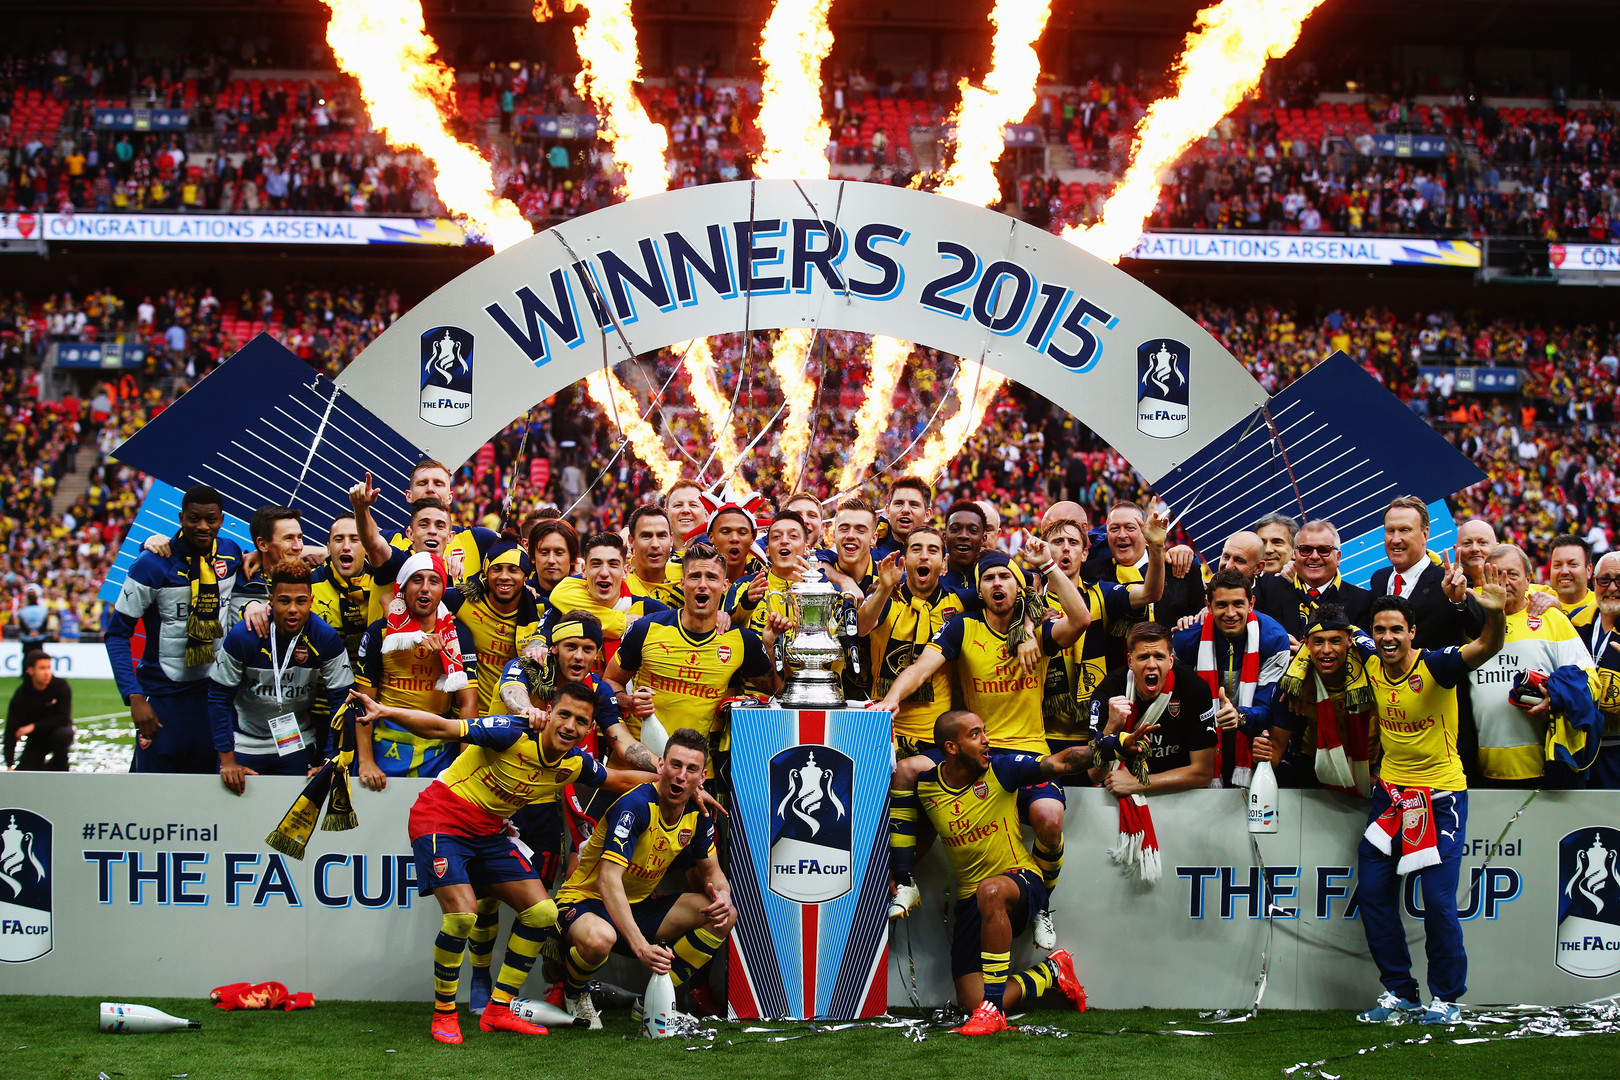 2015 FA Cup Stage.jpg